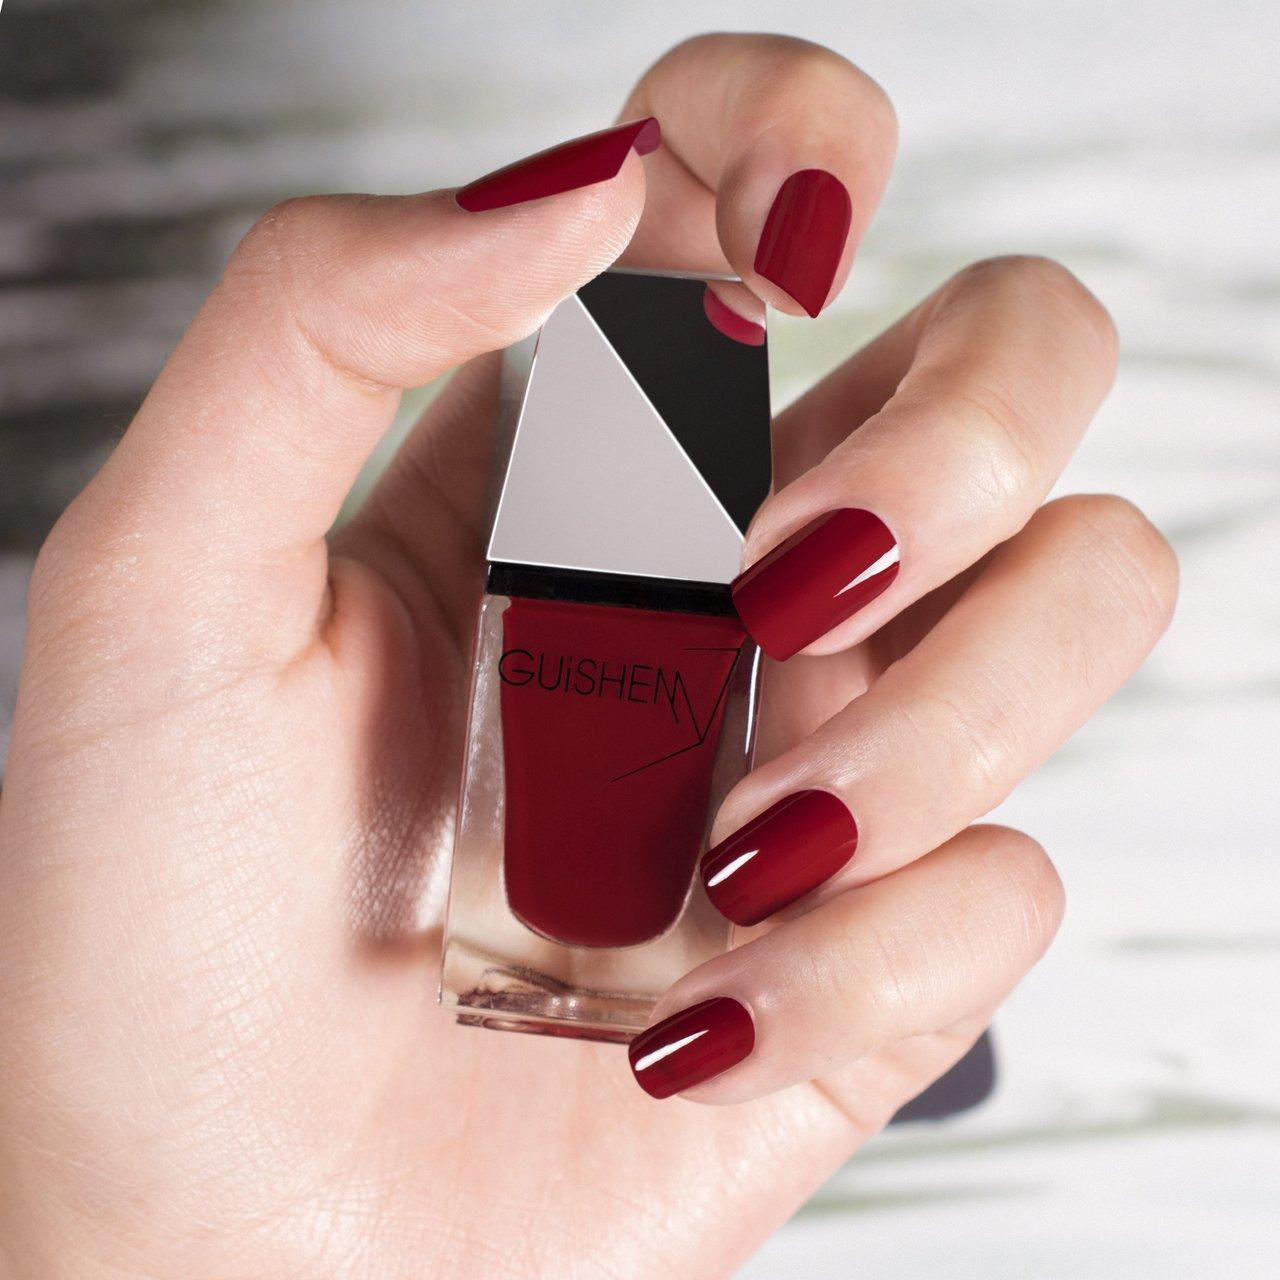 fad392eabd5987 7 Nail Polish Shades Perfect For Winter by Sarah Healy - Musely